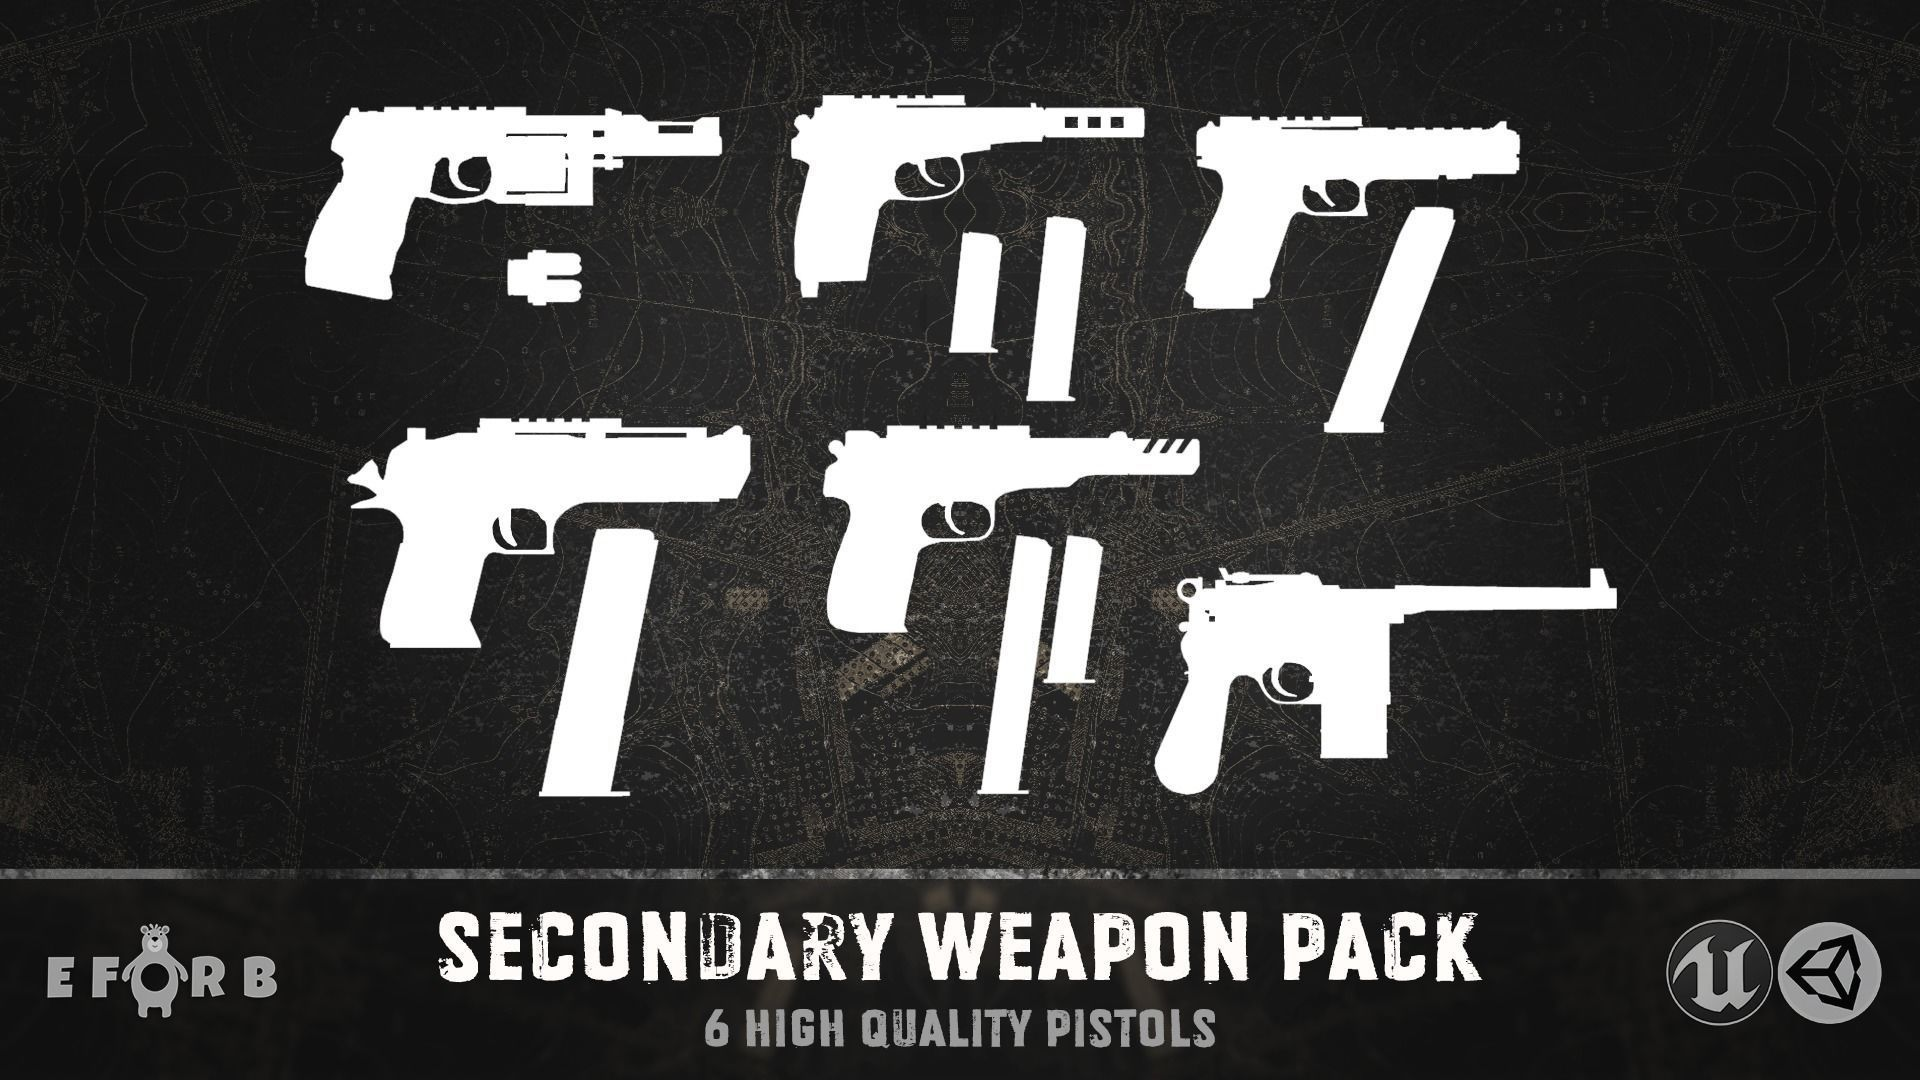 Secondary weapon pack